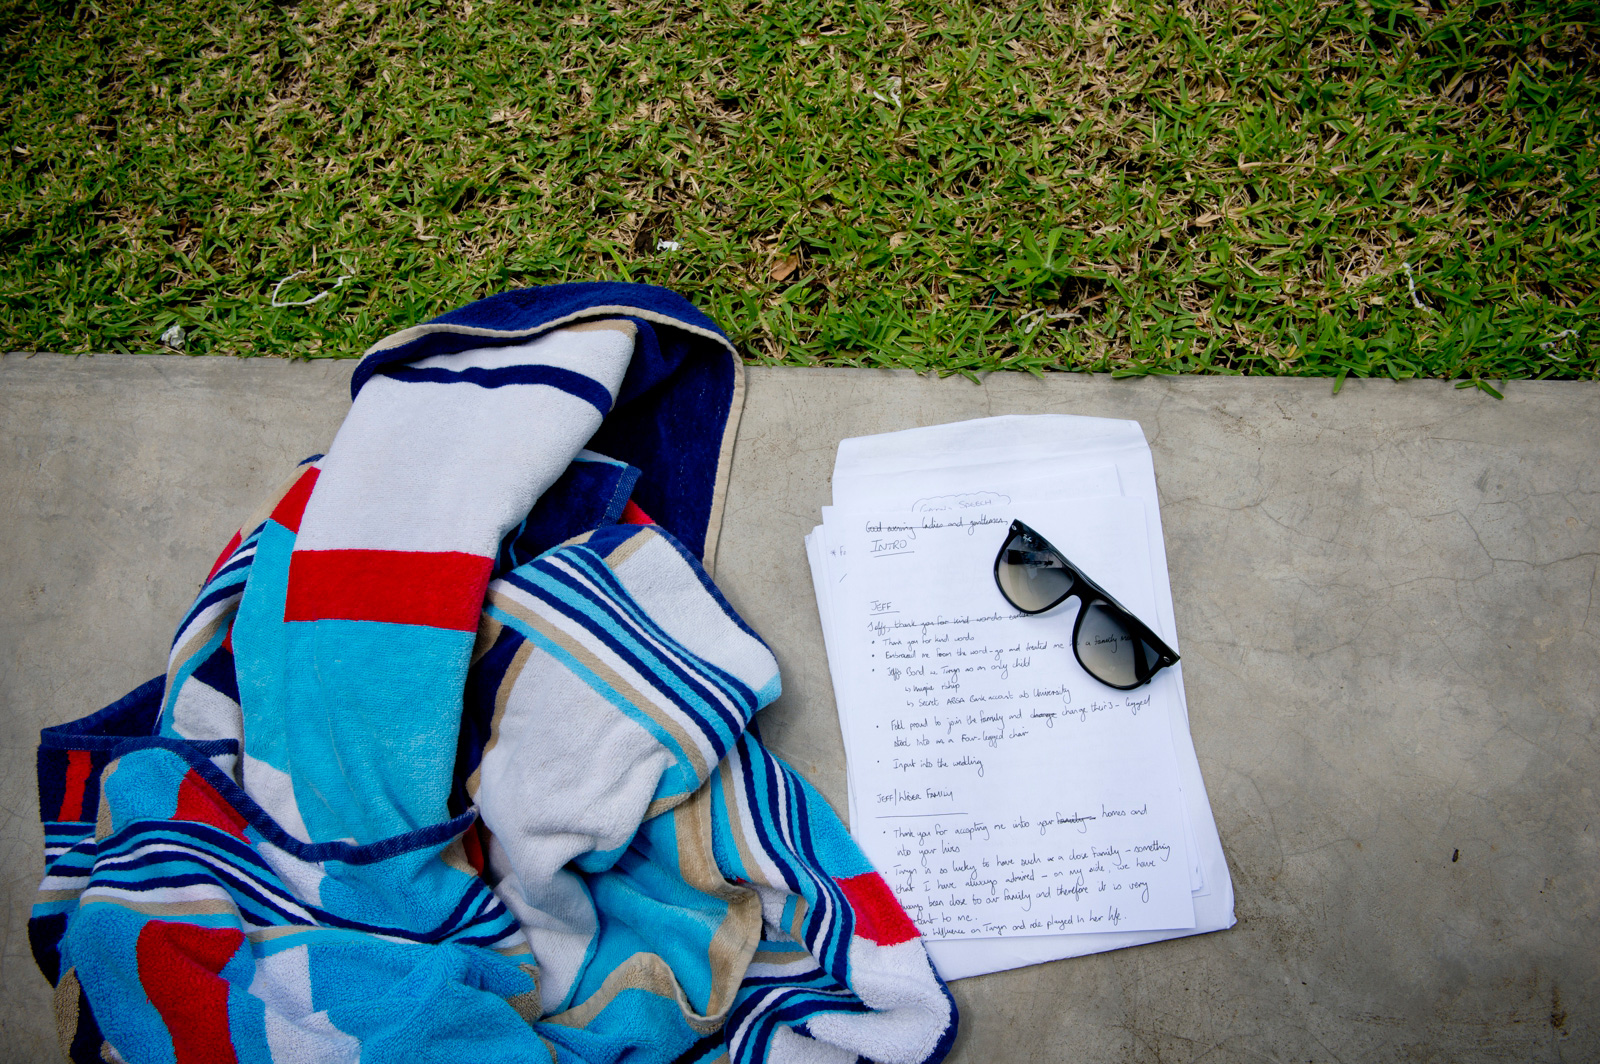 towel and sunglasses